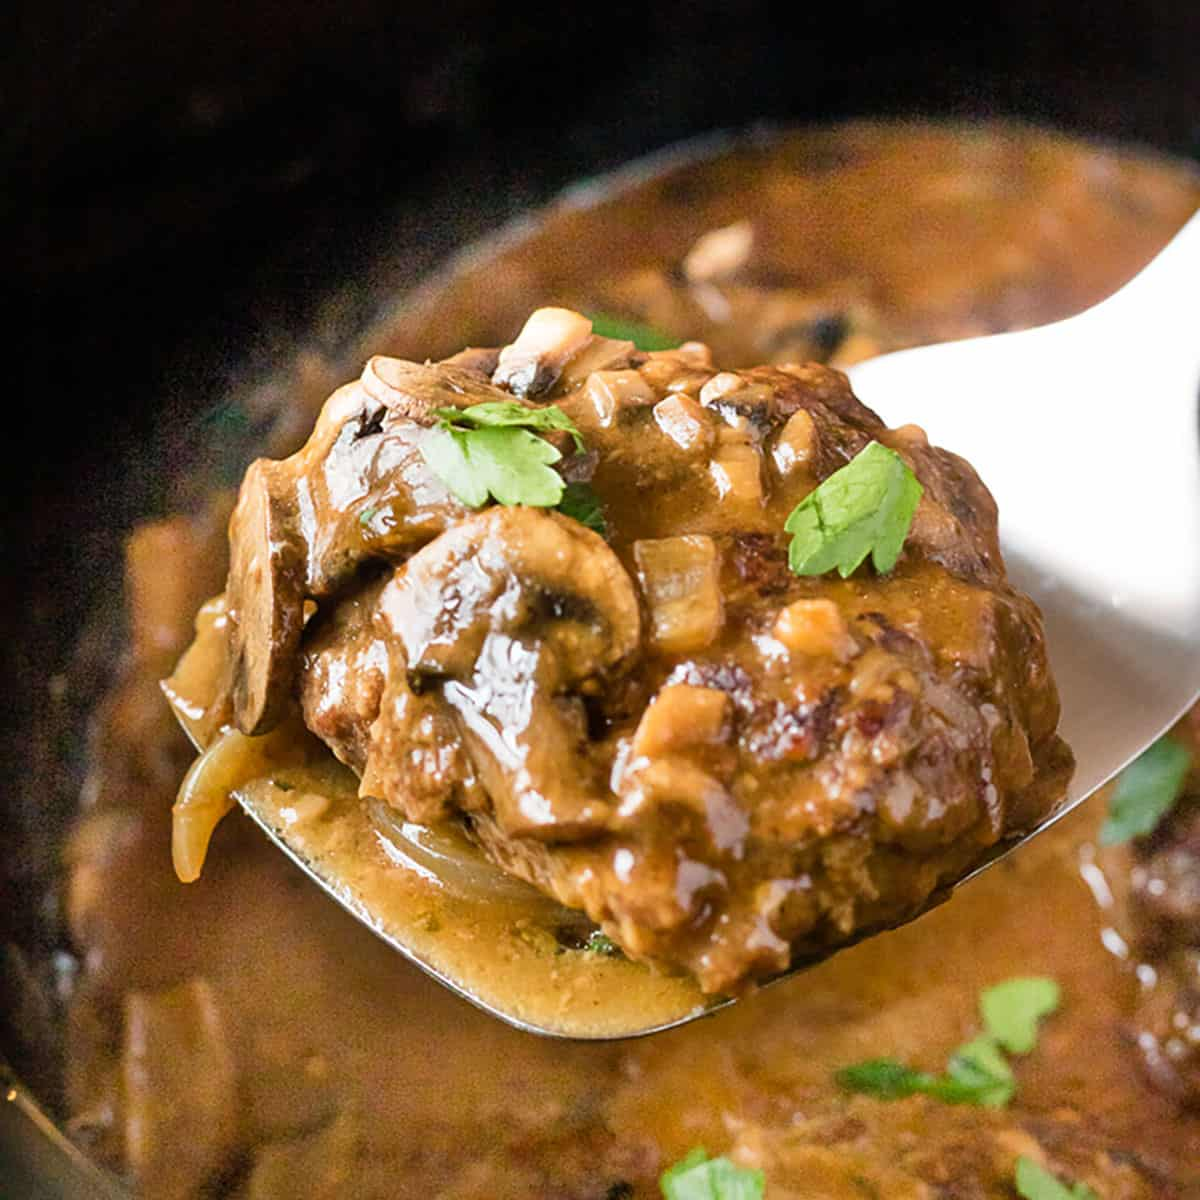 Salisbury steak with mushrooms over a slow cooker.